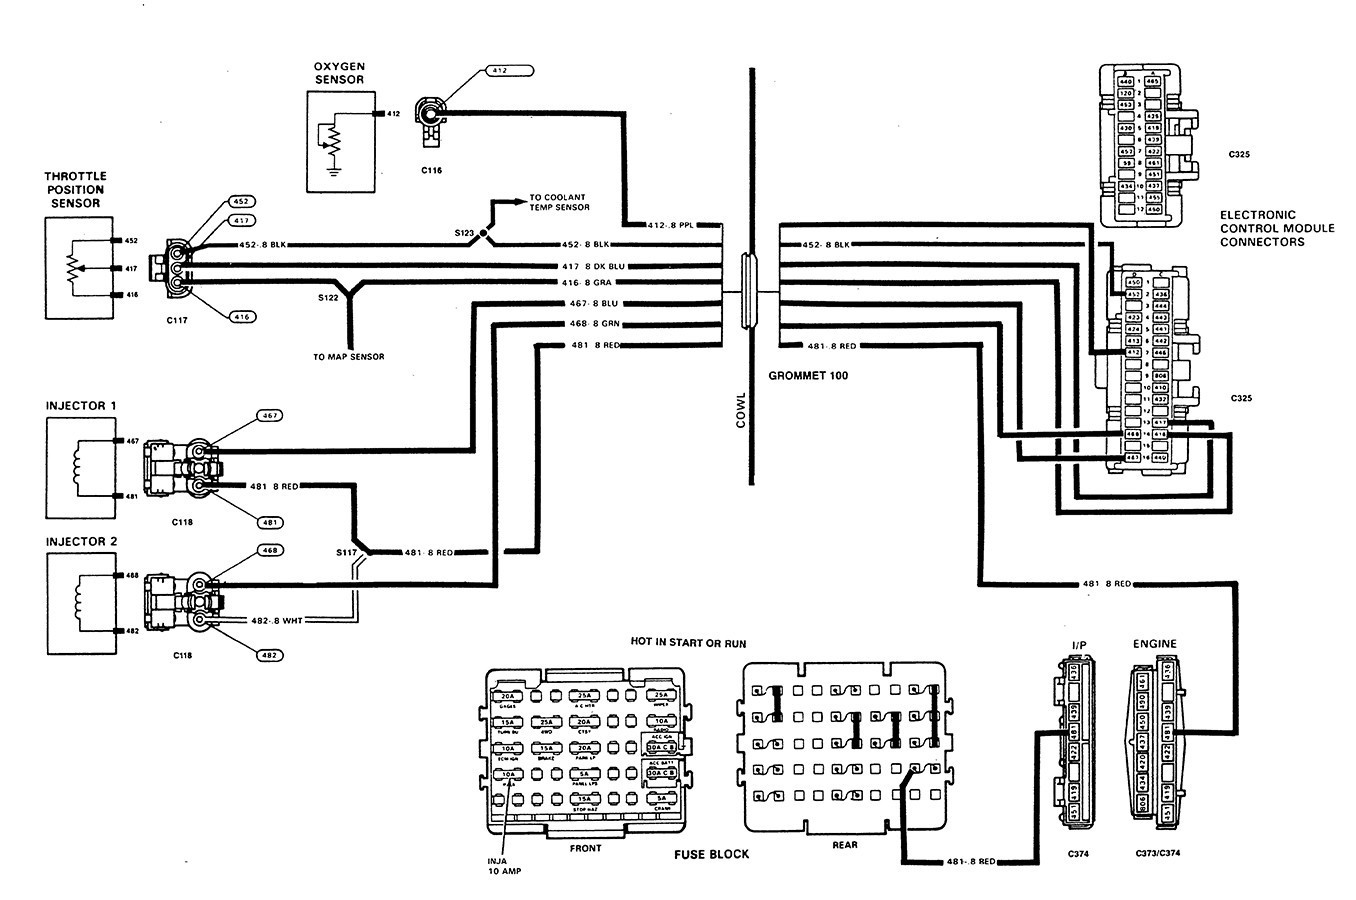 Advanced O2 Sensor Diagnostics Tracing Sensor Wiring And Wiring Diagram